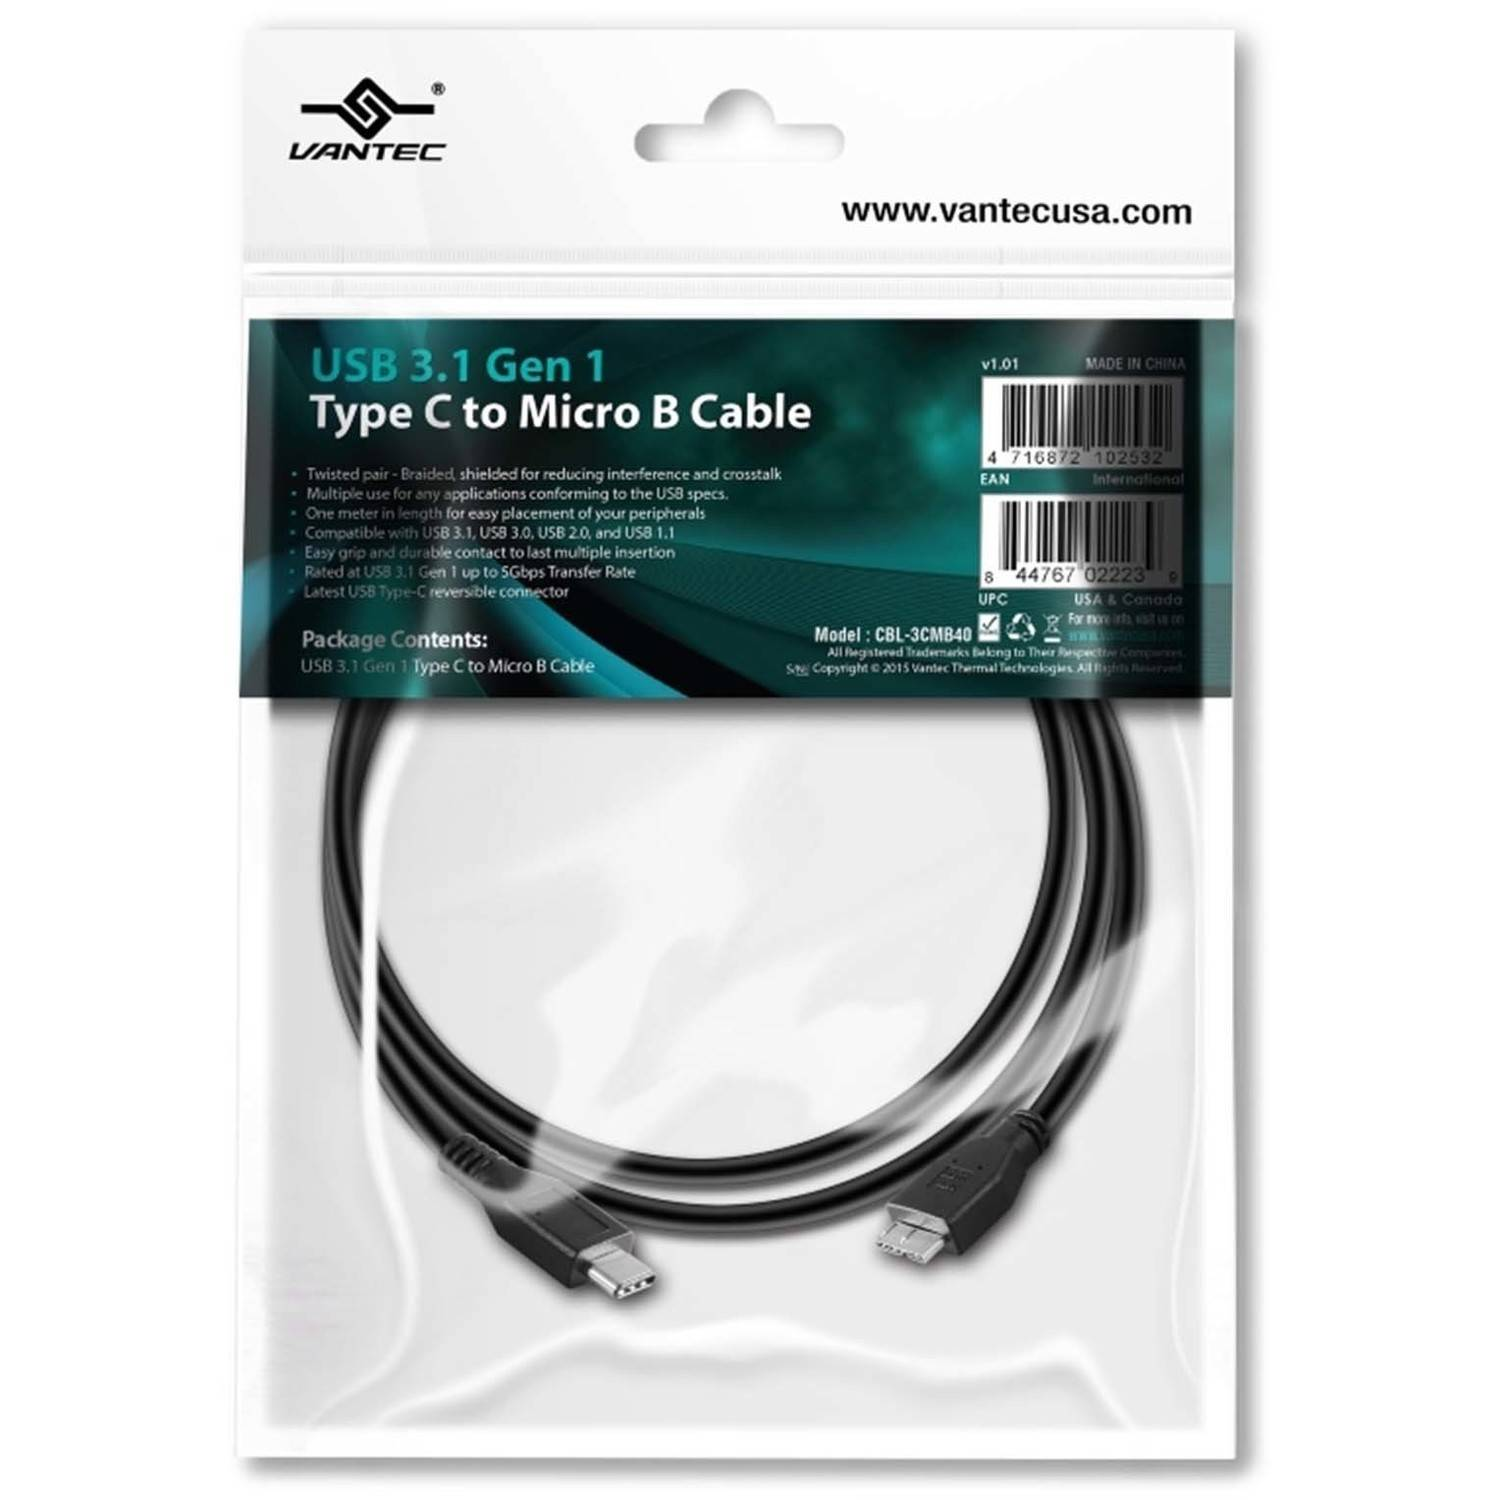 Vantec CBL-3CMB40 USB 3.1 Type C to microUSB-B Cable, Black